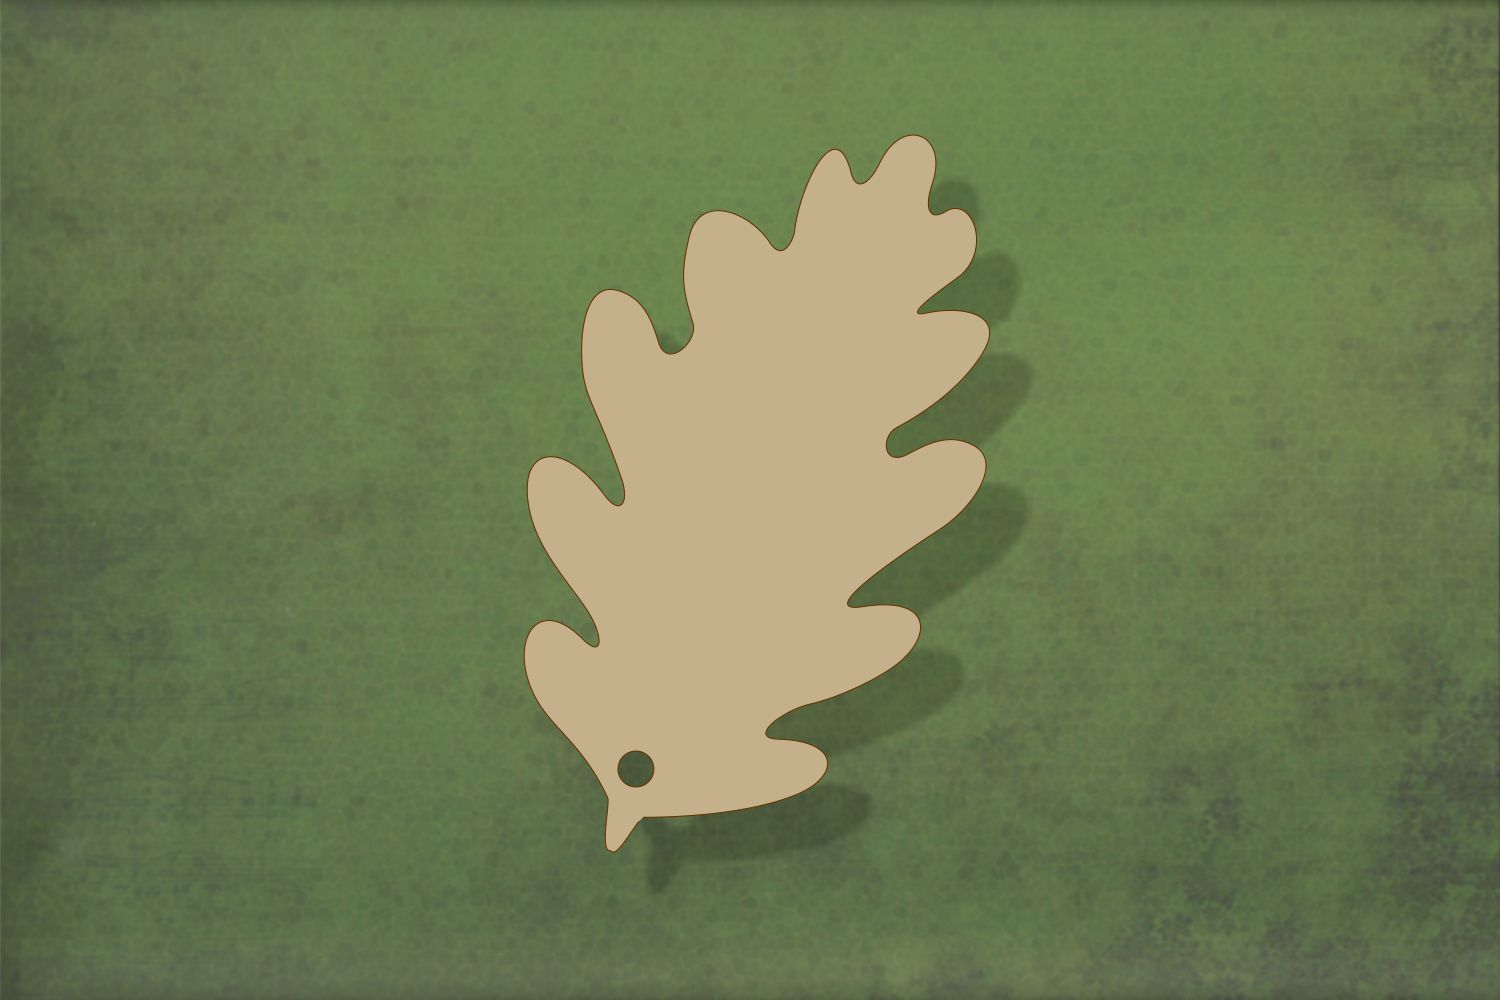 Laser cut, blank wooden Oak leaf shape for craft